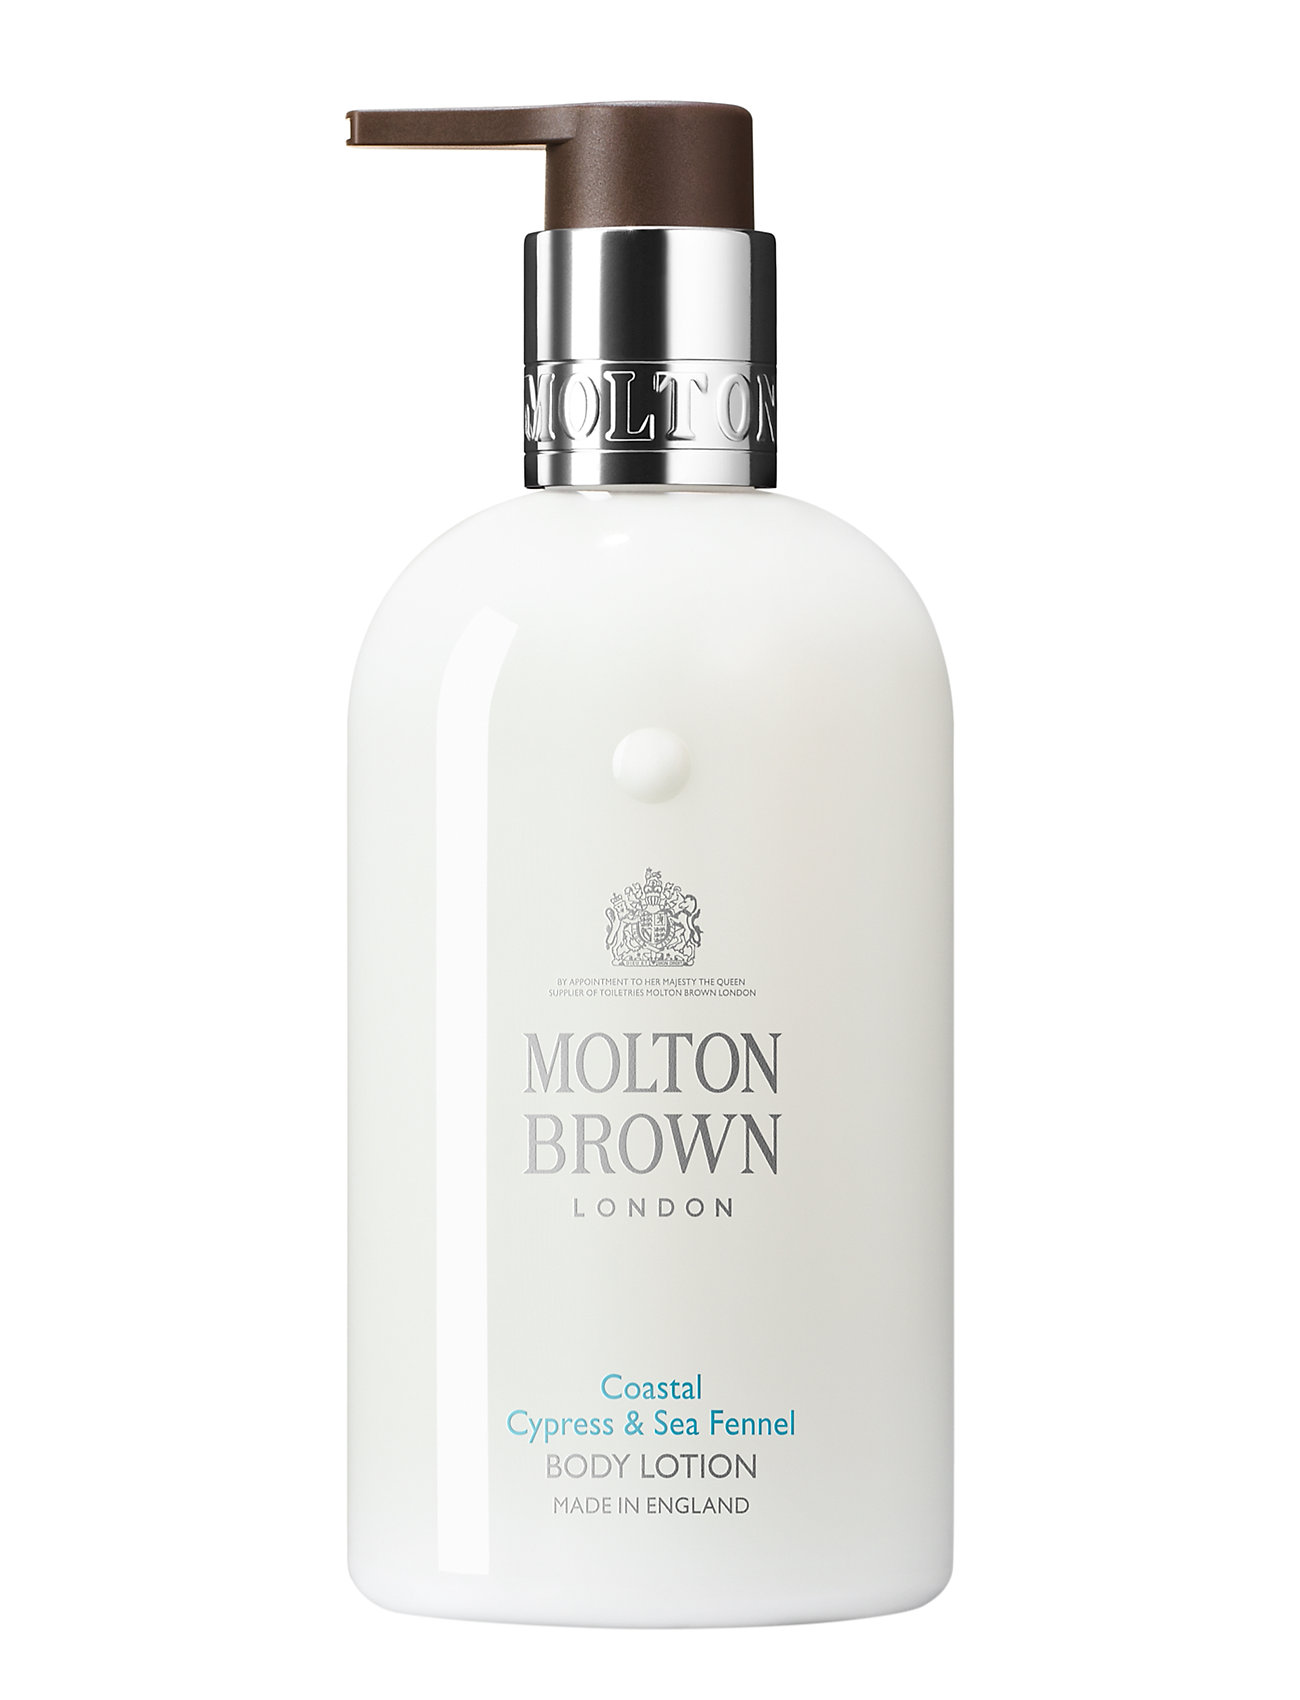 Image of Coastal Cypress & Sea Fennel Body Lotion Body Lotion Hudcreme Nude Molton Brown (3274623103)